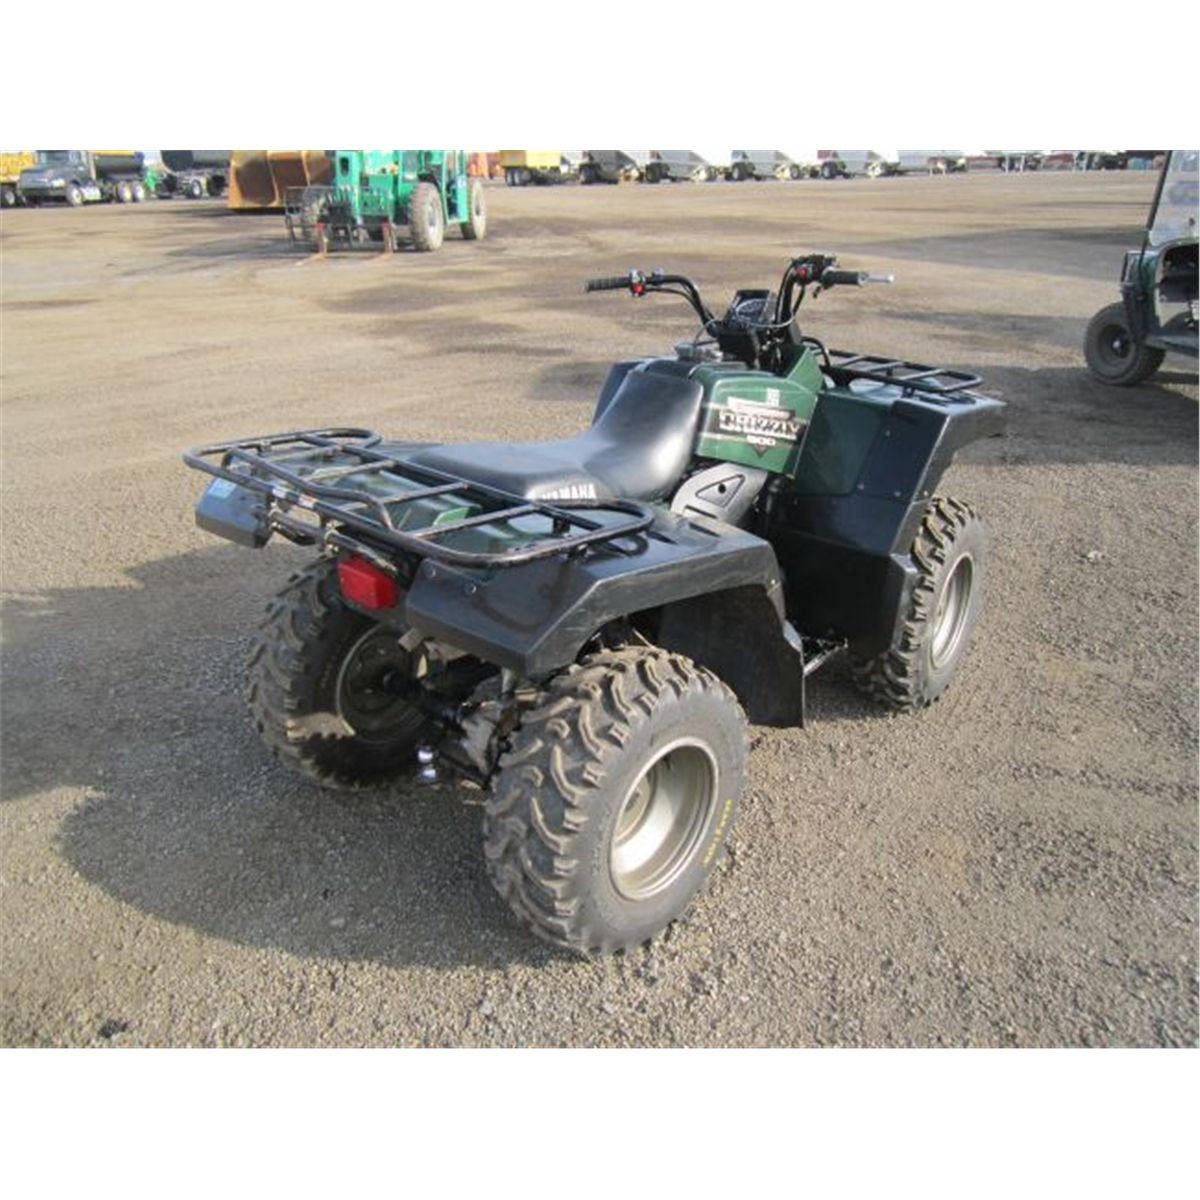 2001 yamaha grizzly 600 4x4 atv for Yamaha grizzly 600